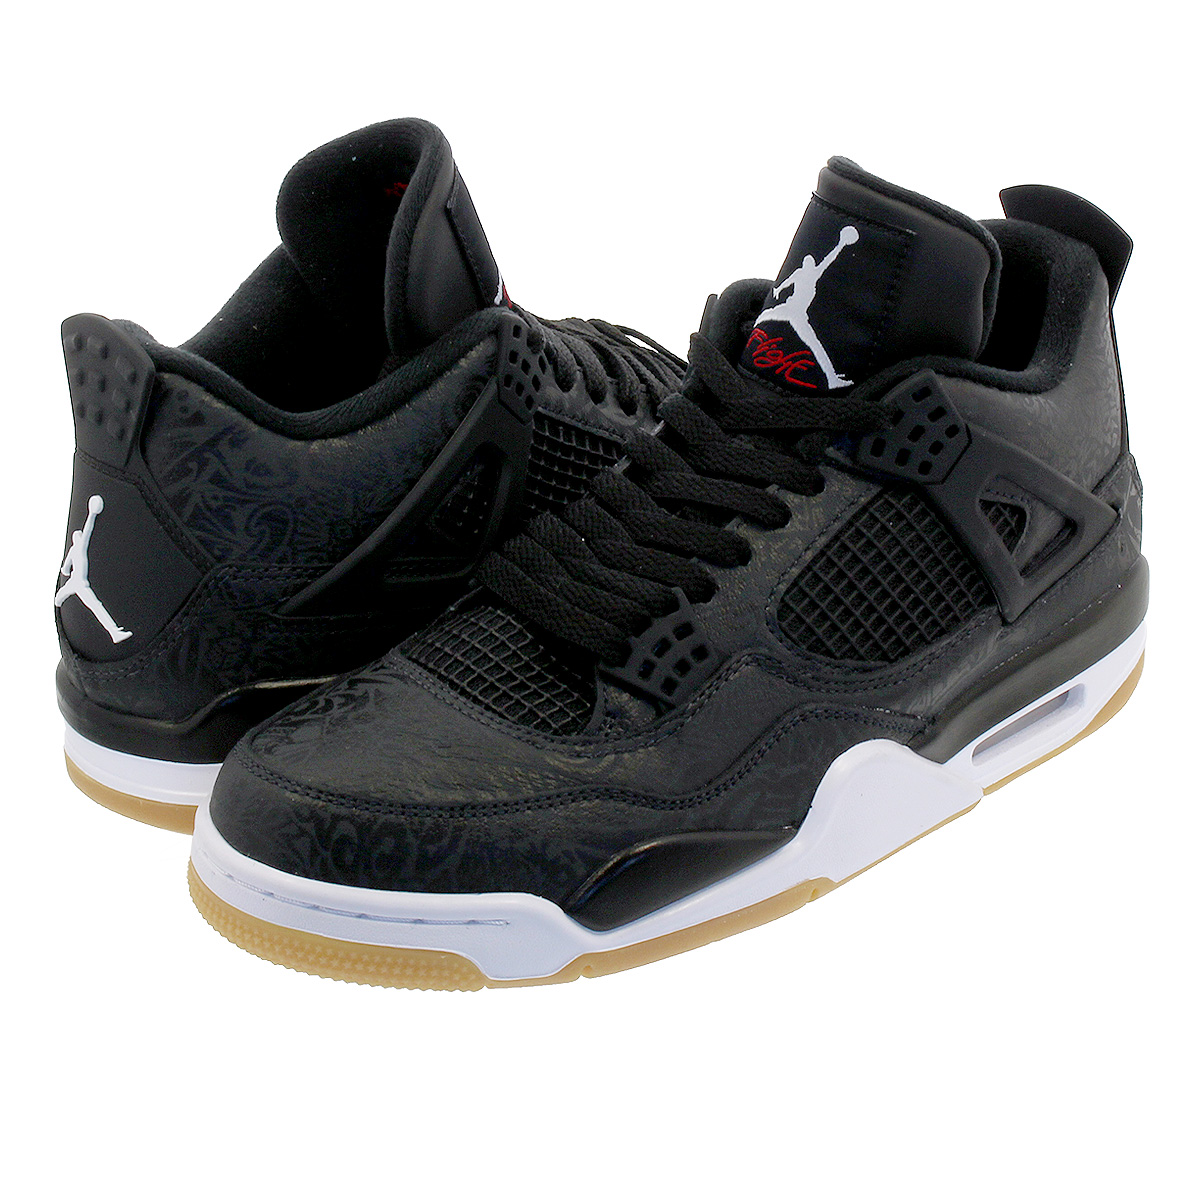 timeless design 3fa1e a1c4f NIKE AIR JORDAN 4 RETRO SE LASER Nike Air Jordan 4 nostalgic SE laser BLACK  WHITE GUM LIGHT BROWN ci1184-001